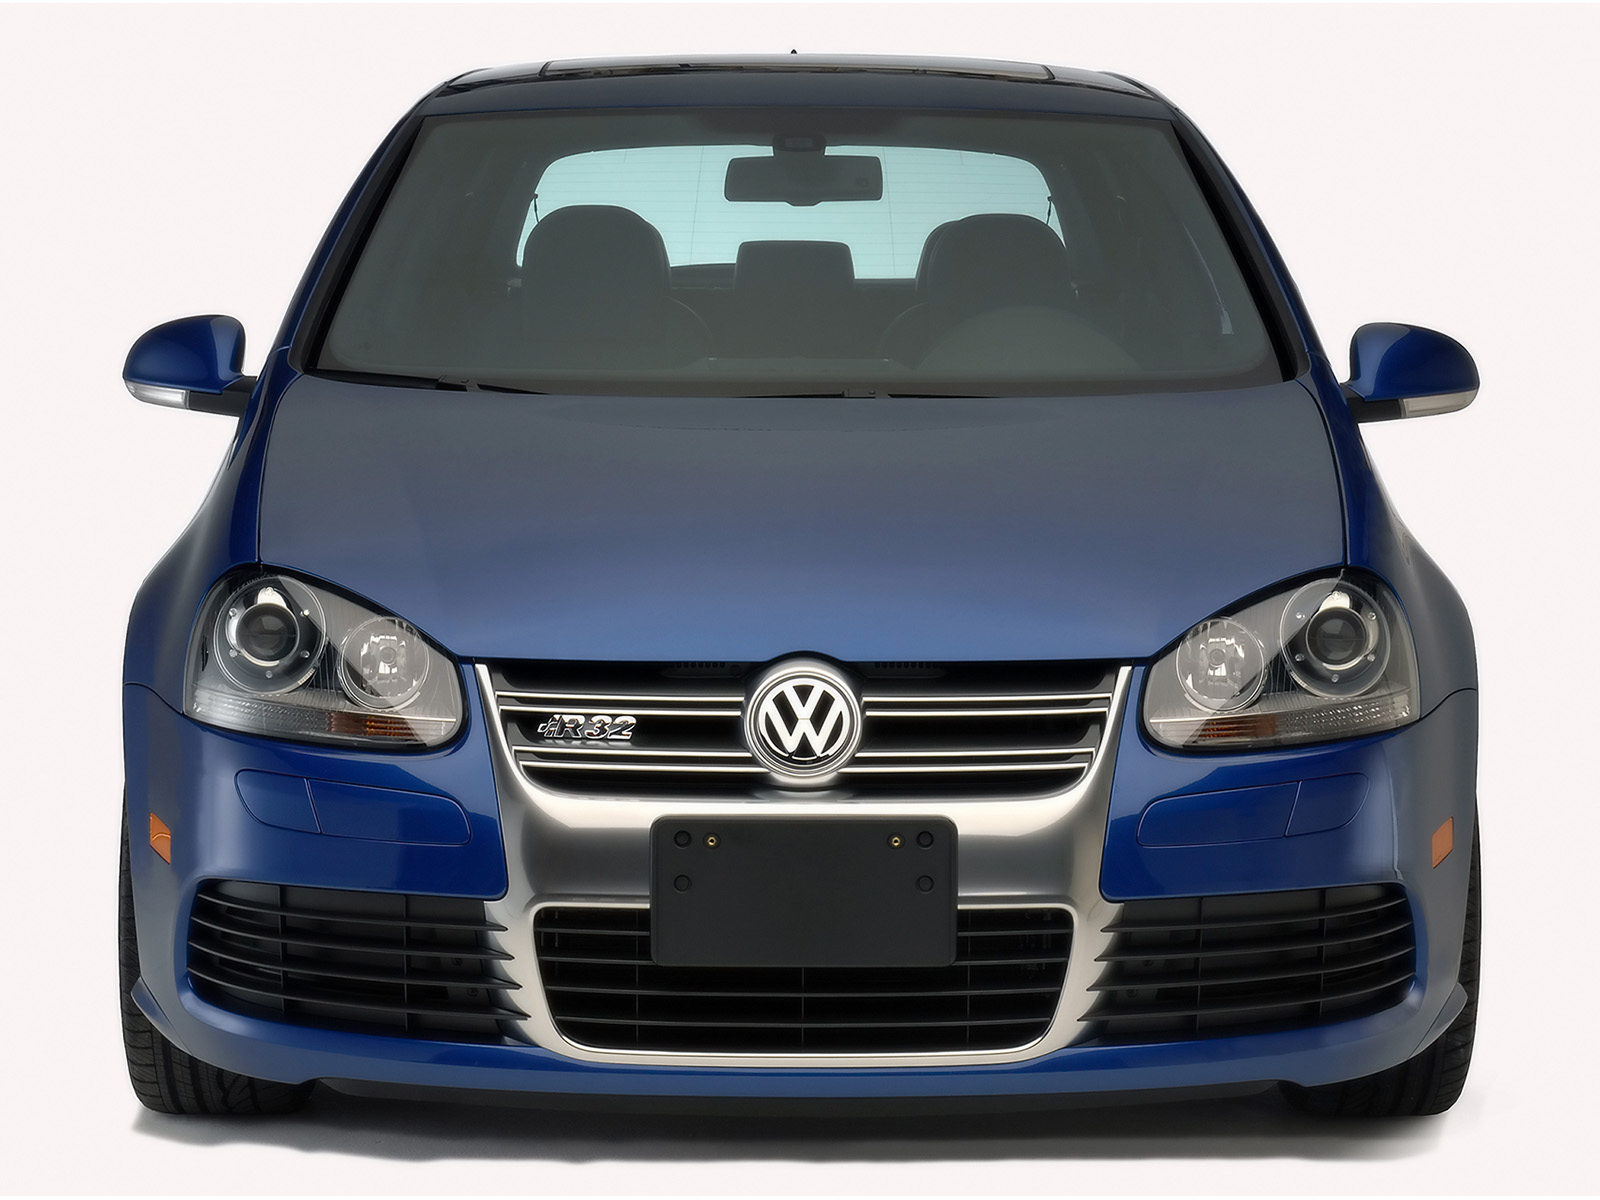 You can vote for this Volkswagen R32 photo